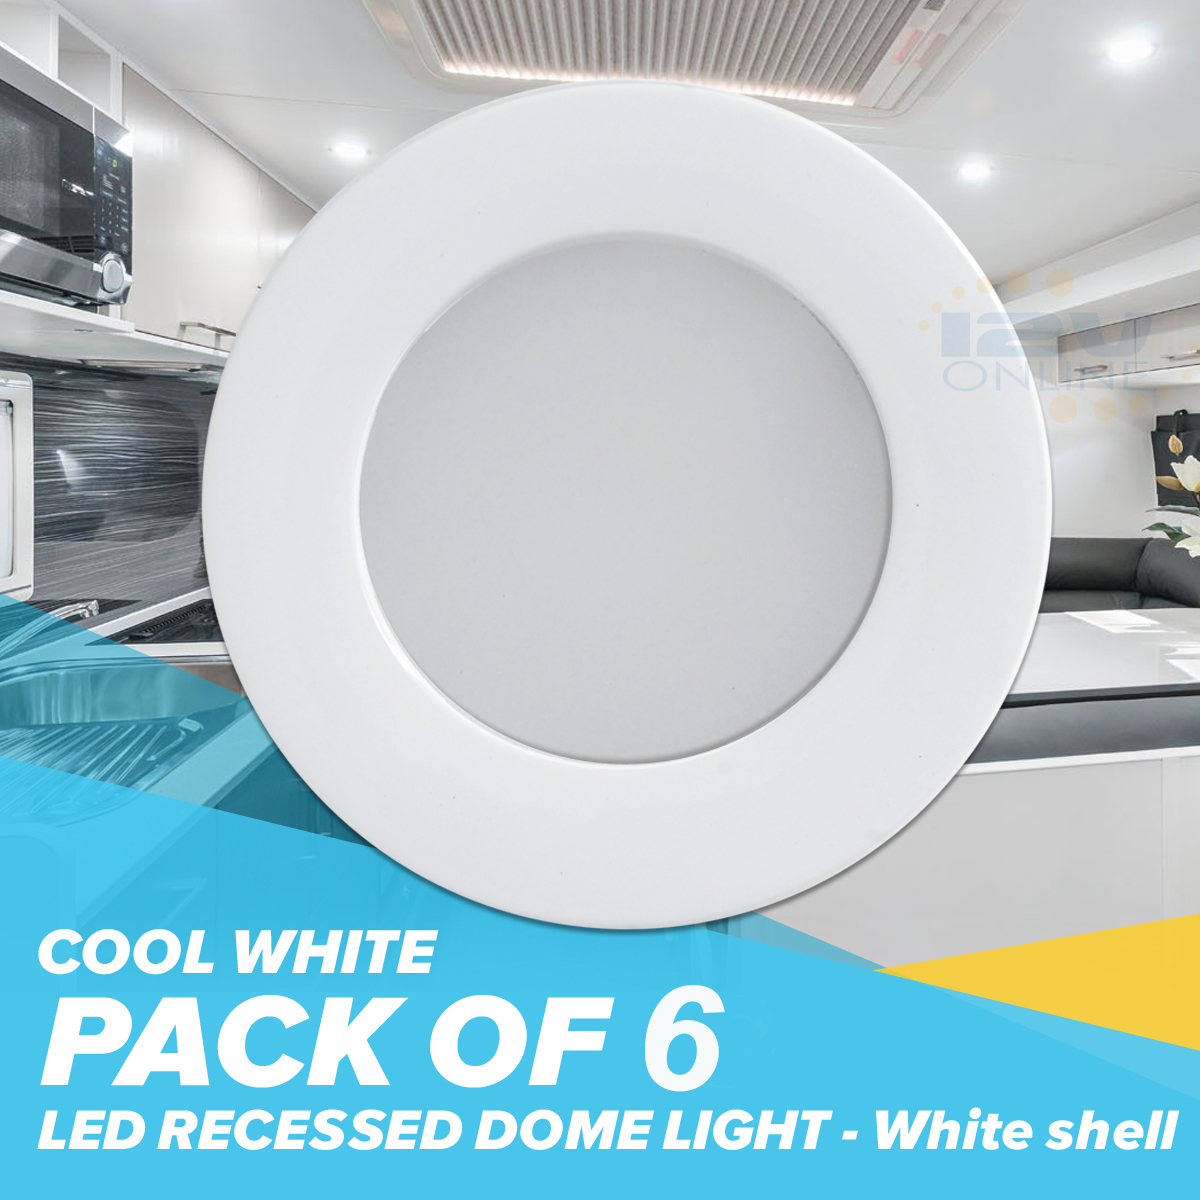 6PCS 12V 70MM White LED Recessed Ceiling Dome Light RV